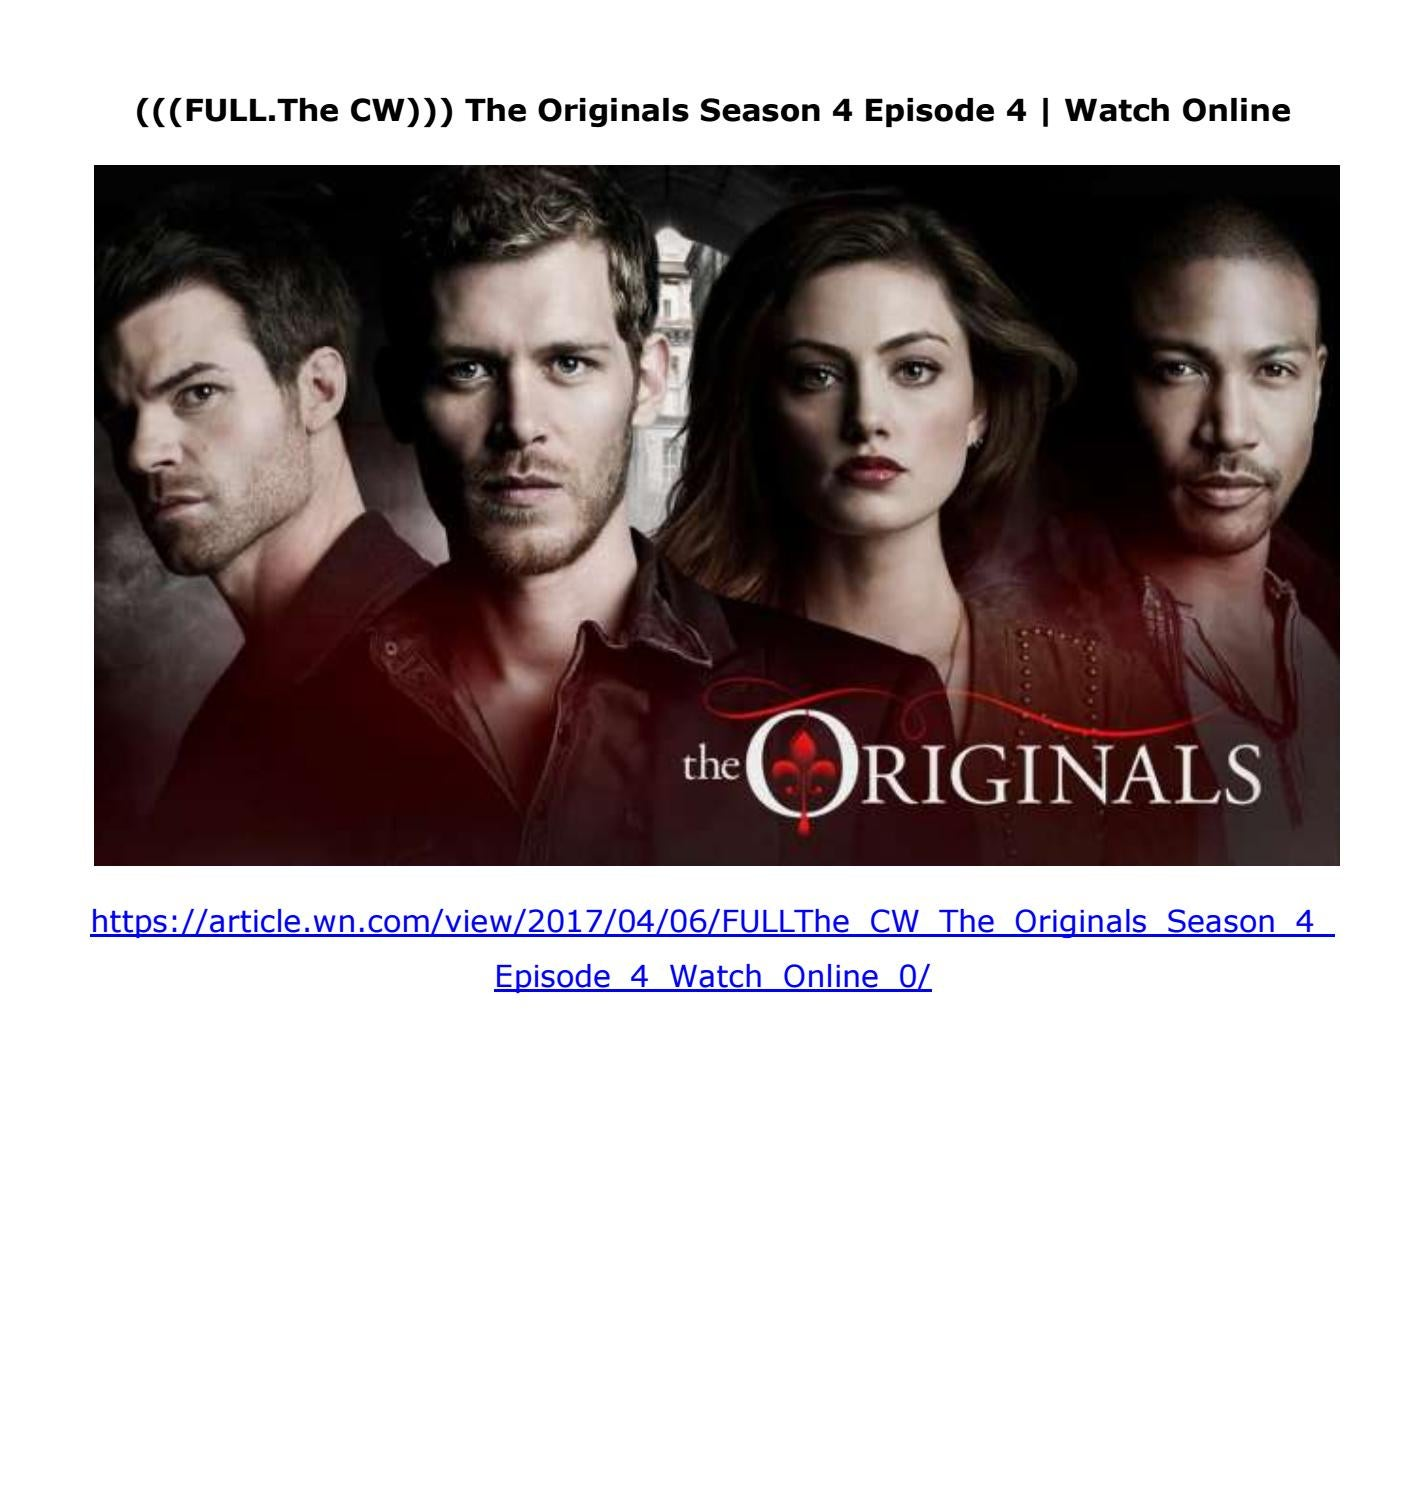 FULL The CW))) The Originals Season 4 Episode 4 | Watch Online by